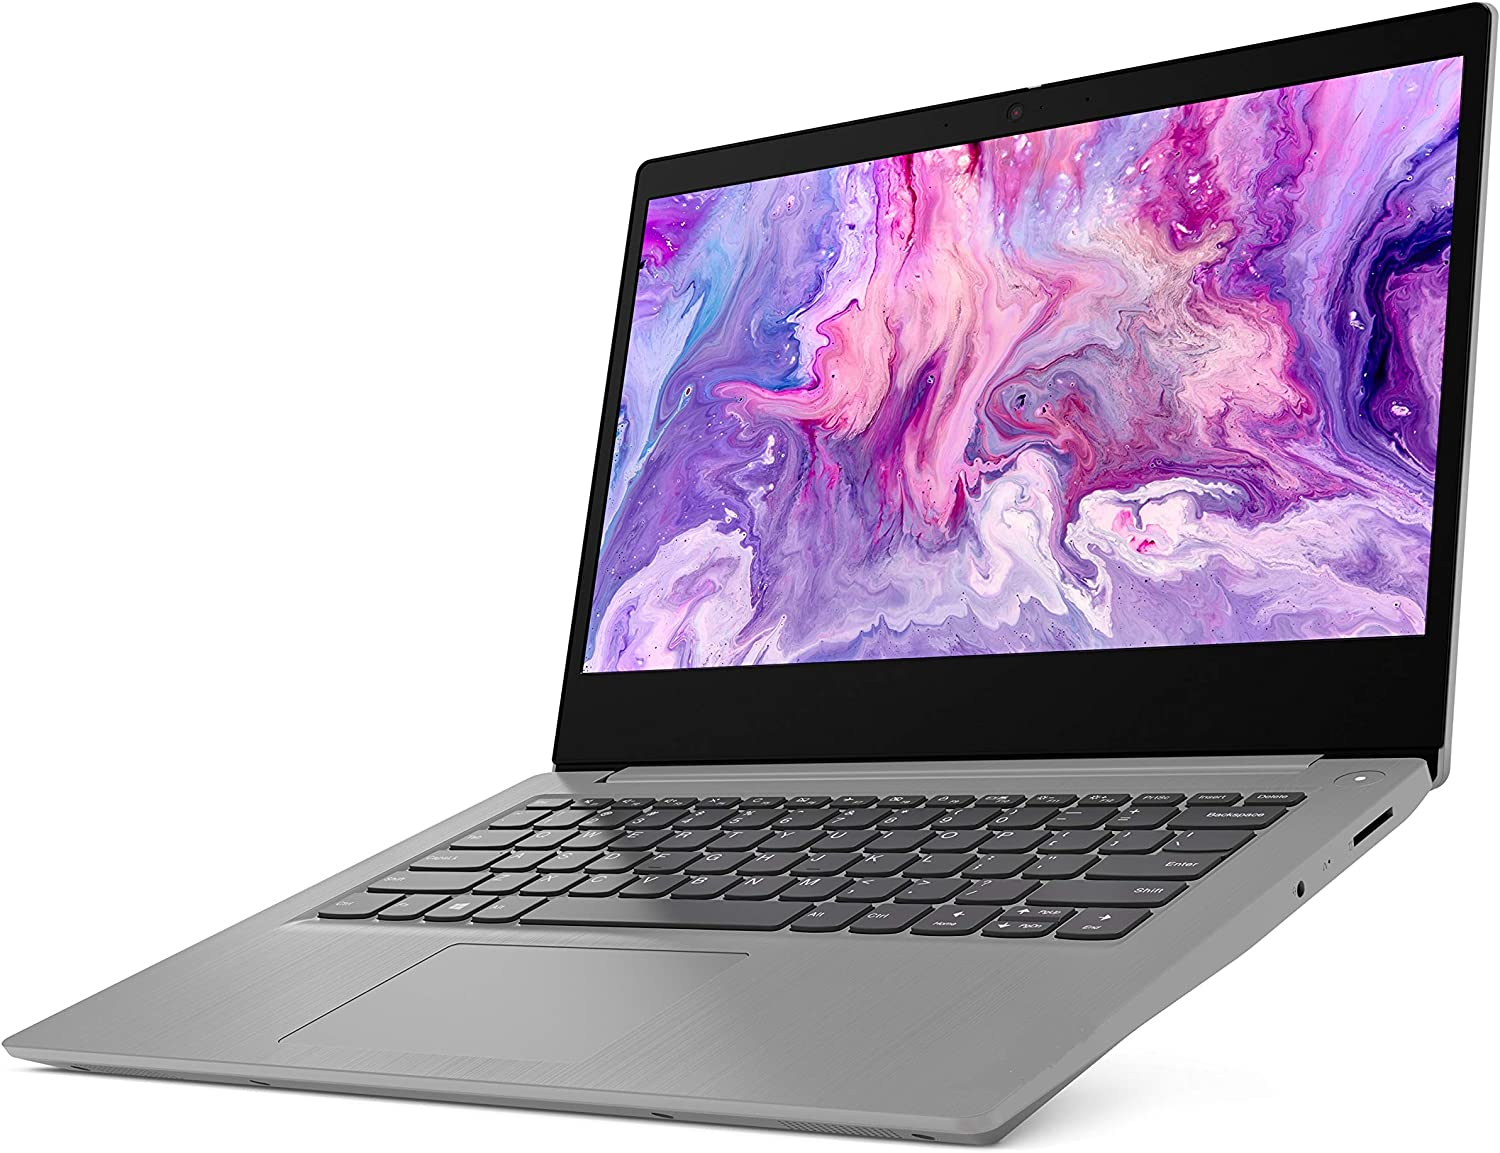 New_Lenovo IdeaPad 3 14 Inch FHD, Intel Core i5 Laptop PC for Student Business, 8GB RAM, 512GB SSD, Webcam, WiFi, Bluetooth, HDMI, Upto 9Hrs Battery Life, Microphones, Win 10, 1-Week AimCare Support